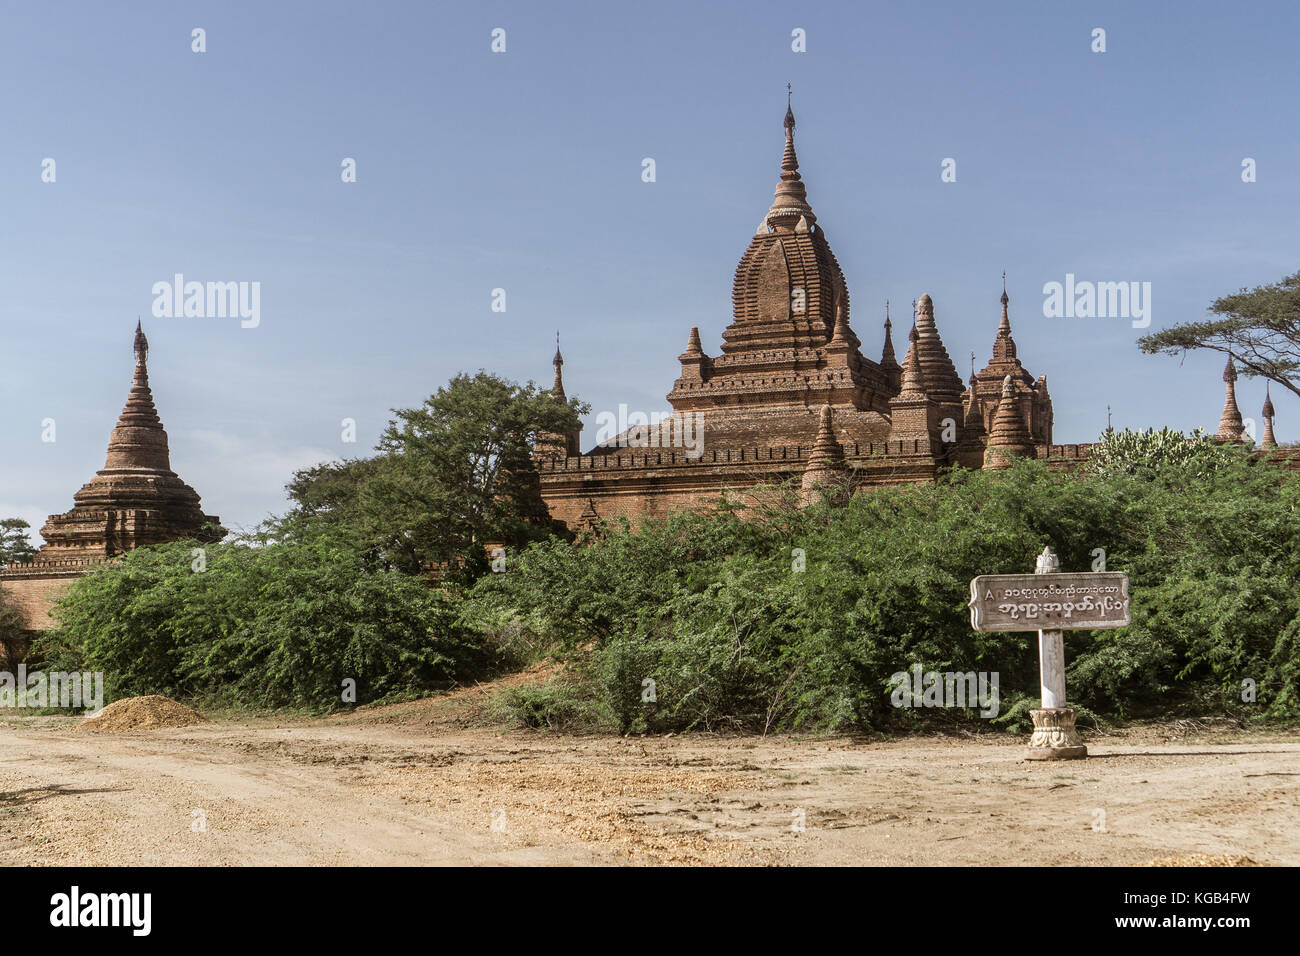 Bagan, Myanmar Pagodas (Temples) Stock Photo